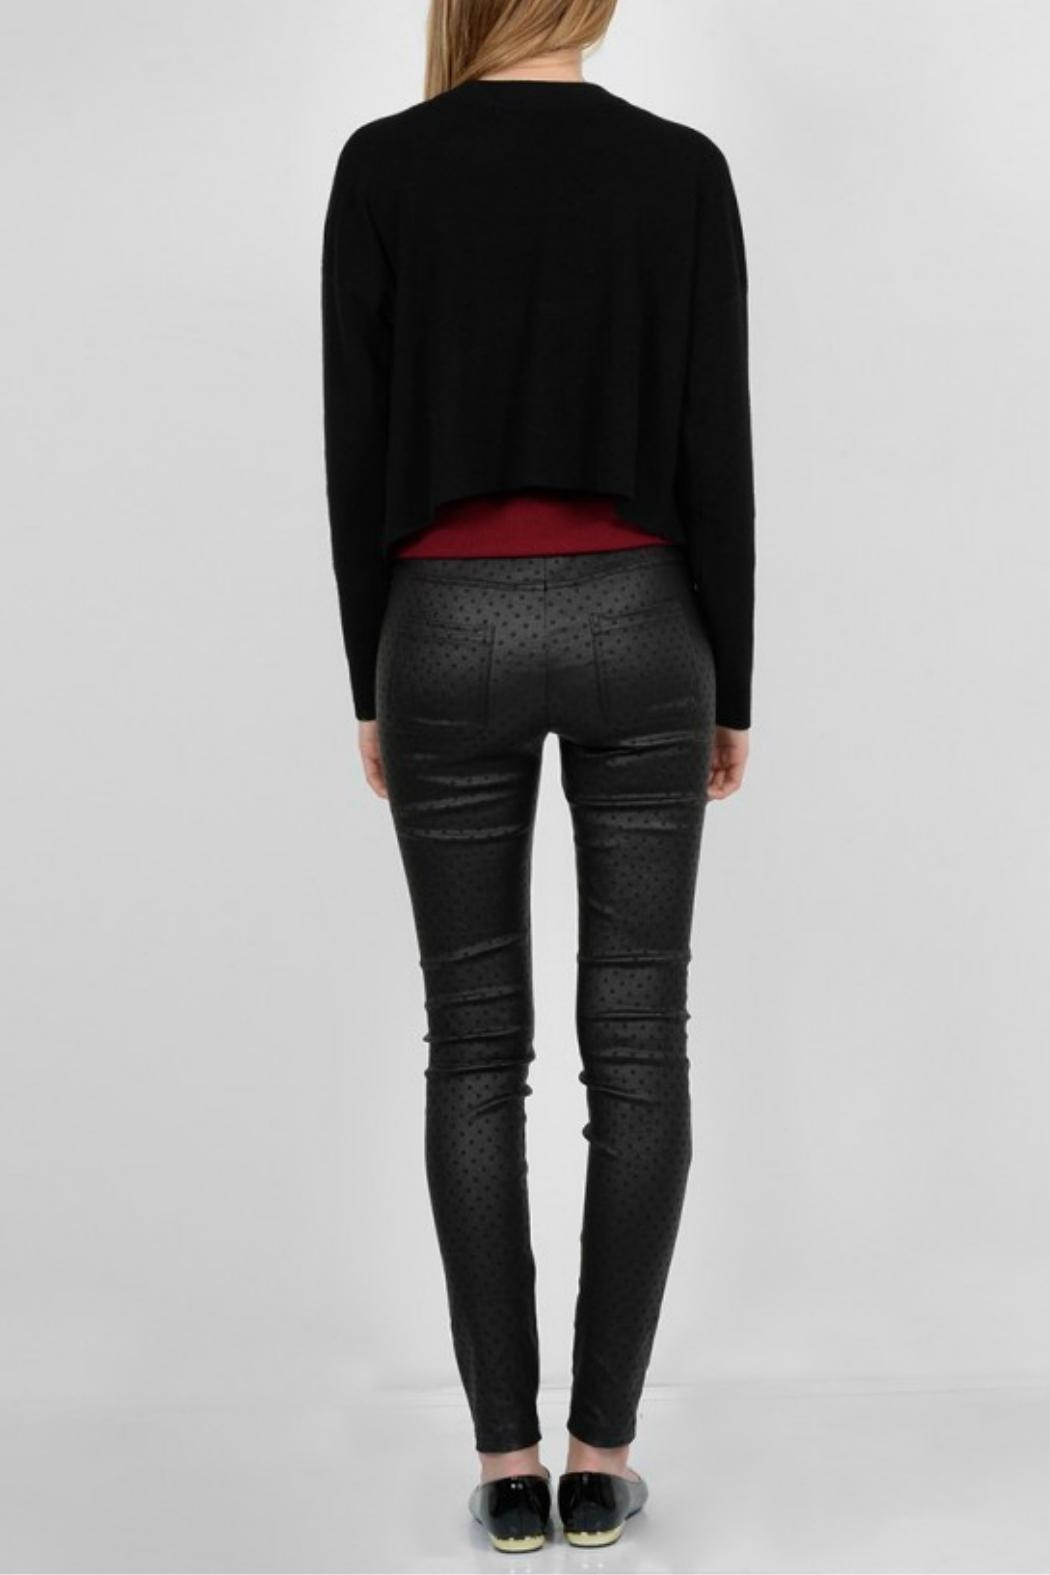 Molly Bracken Stretchy Skinny Pant - Back Cropped Image